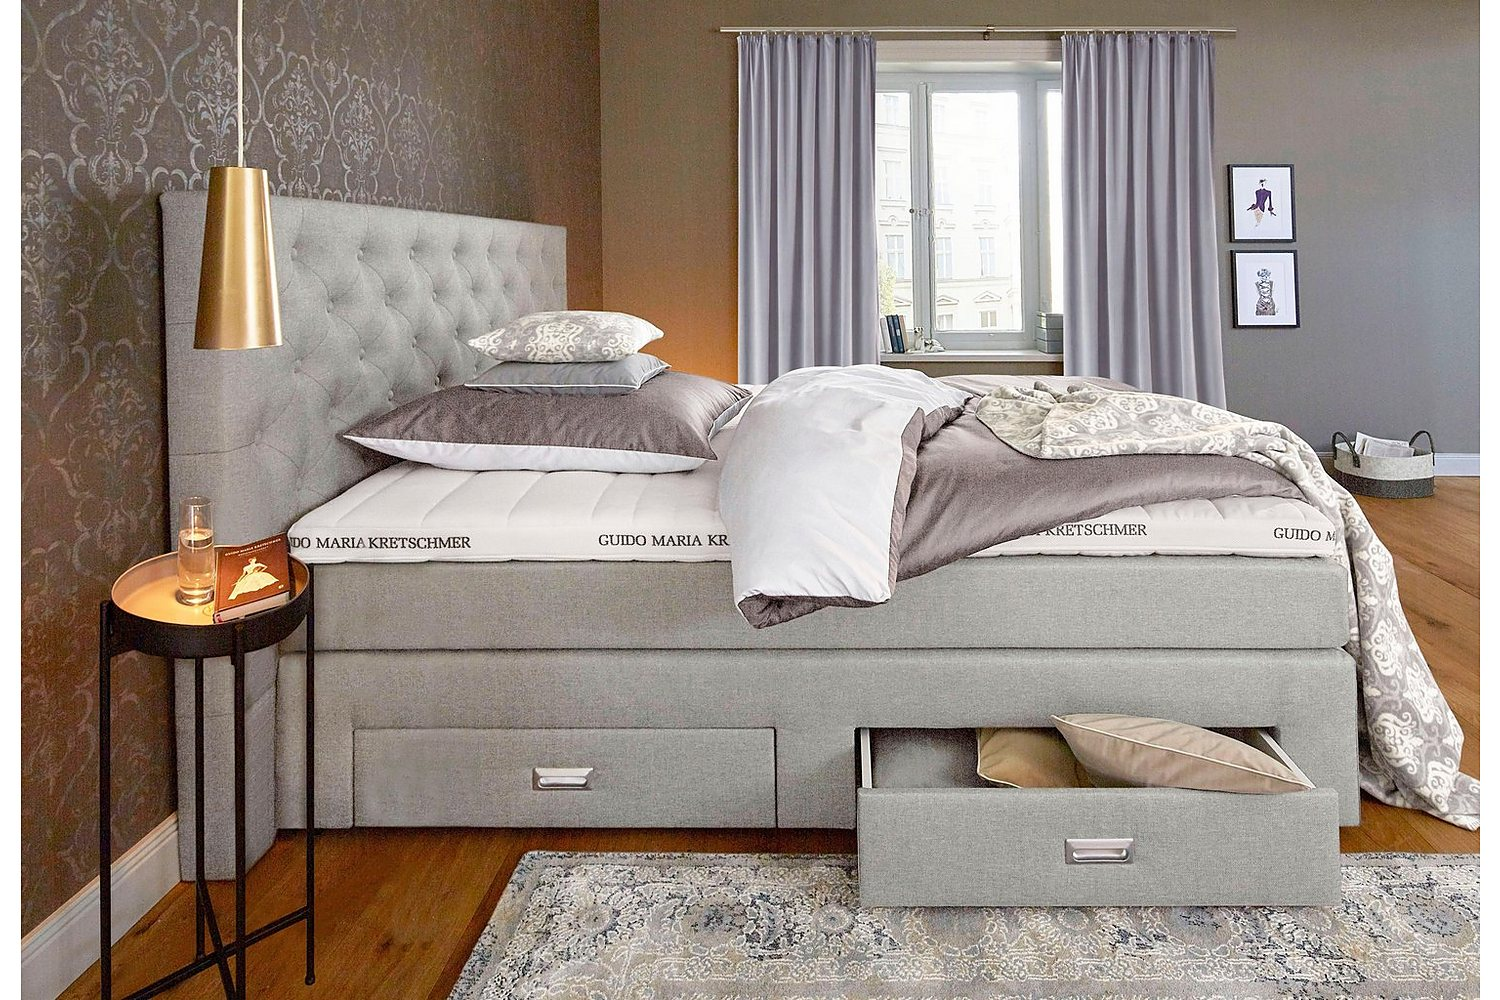 gmk home living boxspringbett aivi alles was du wissen musst. Black Bedroom Furniture Sets. Home Design Ideas